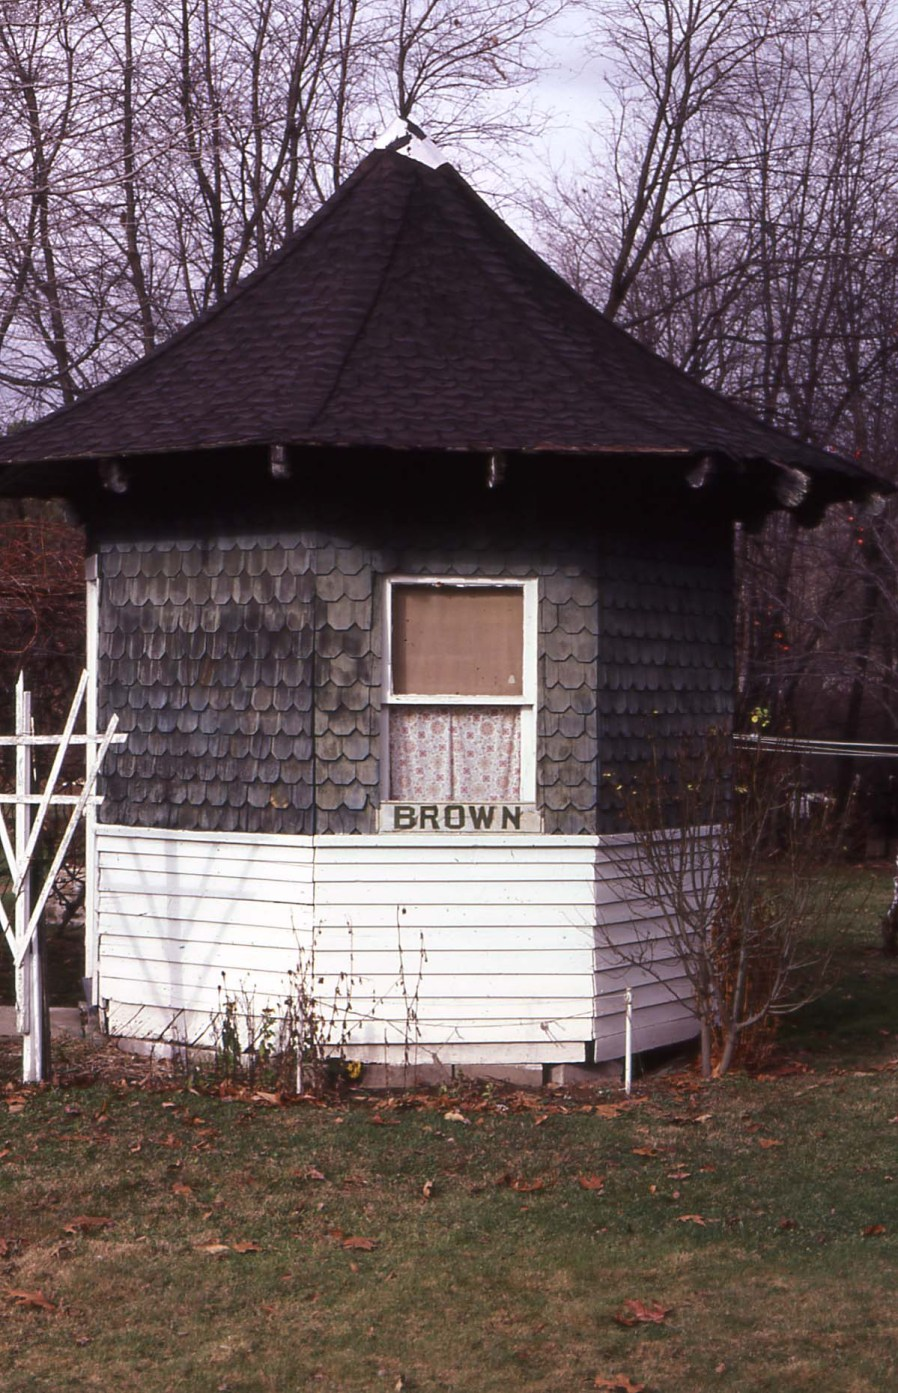 Brown Shelter as first examined in 1984.